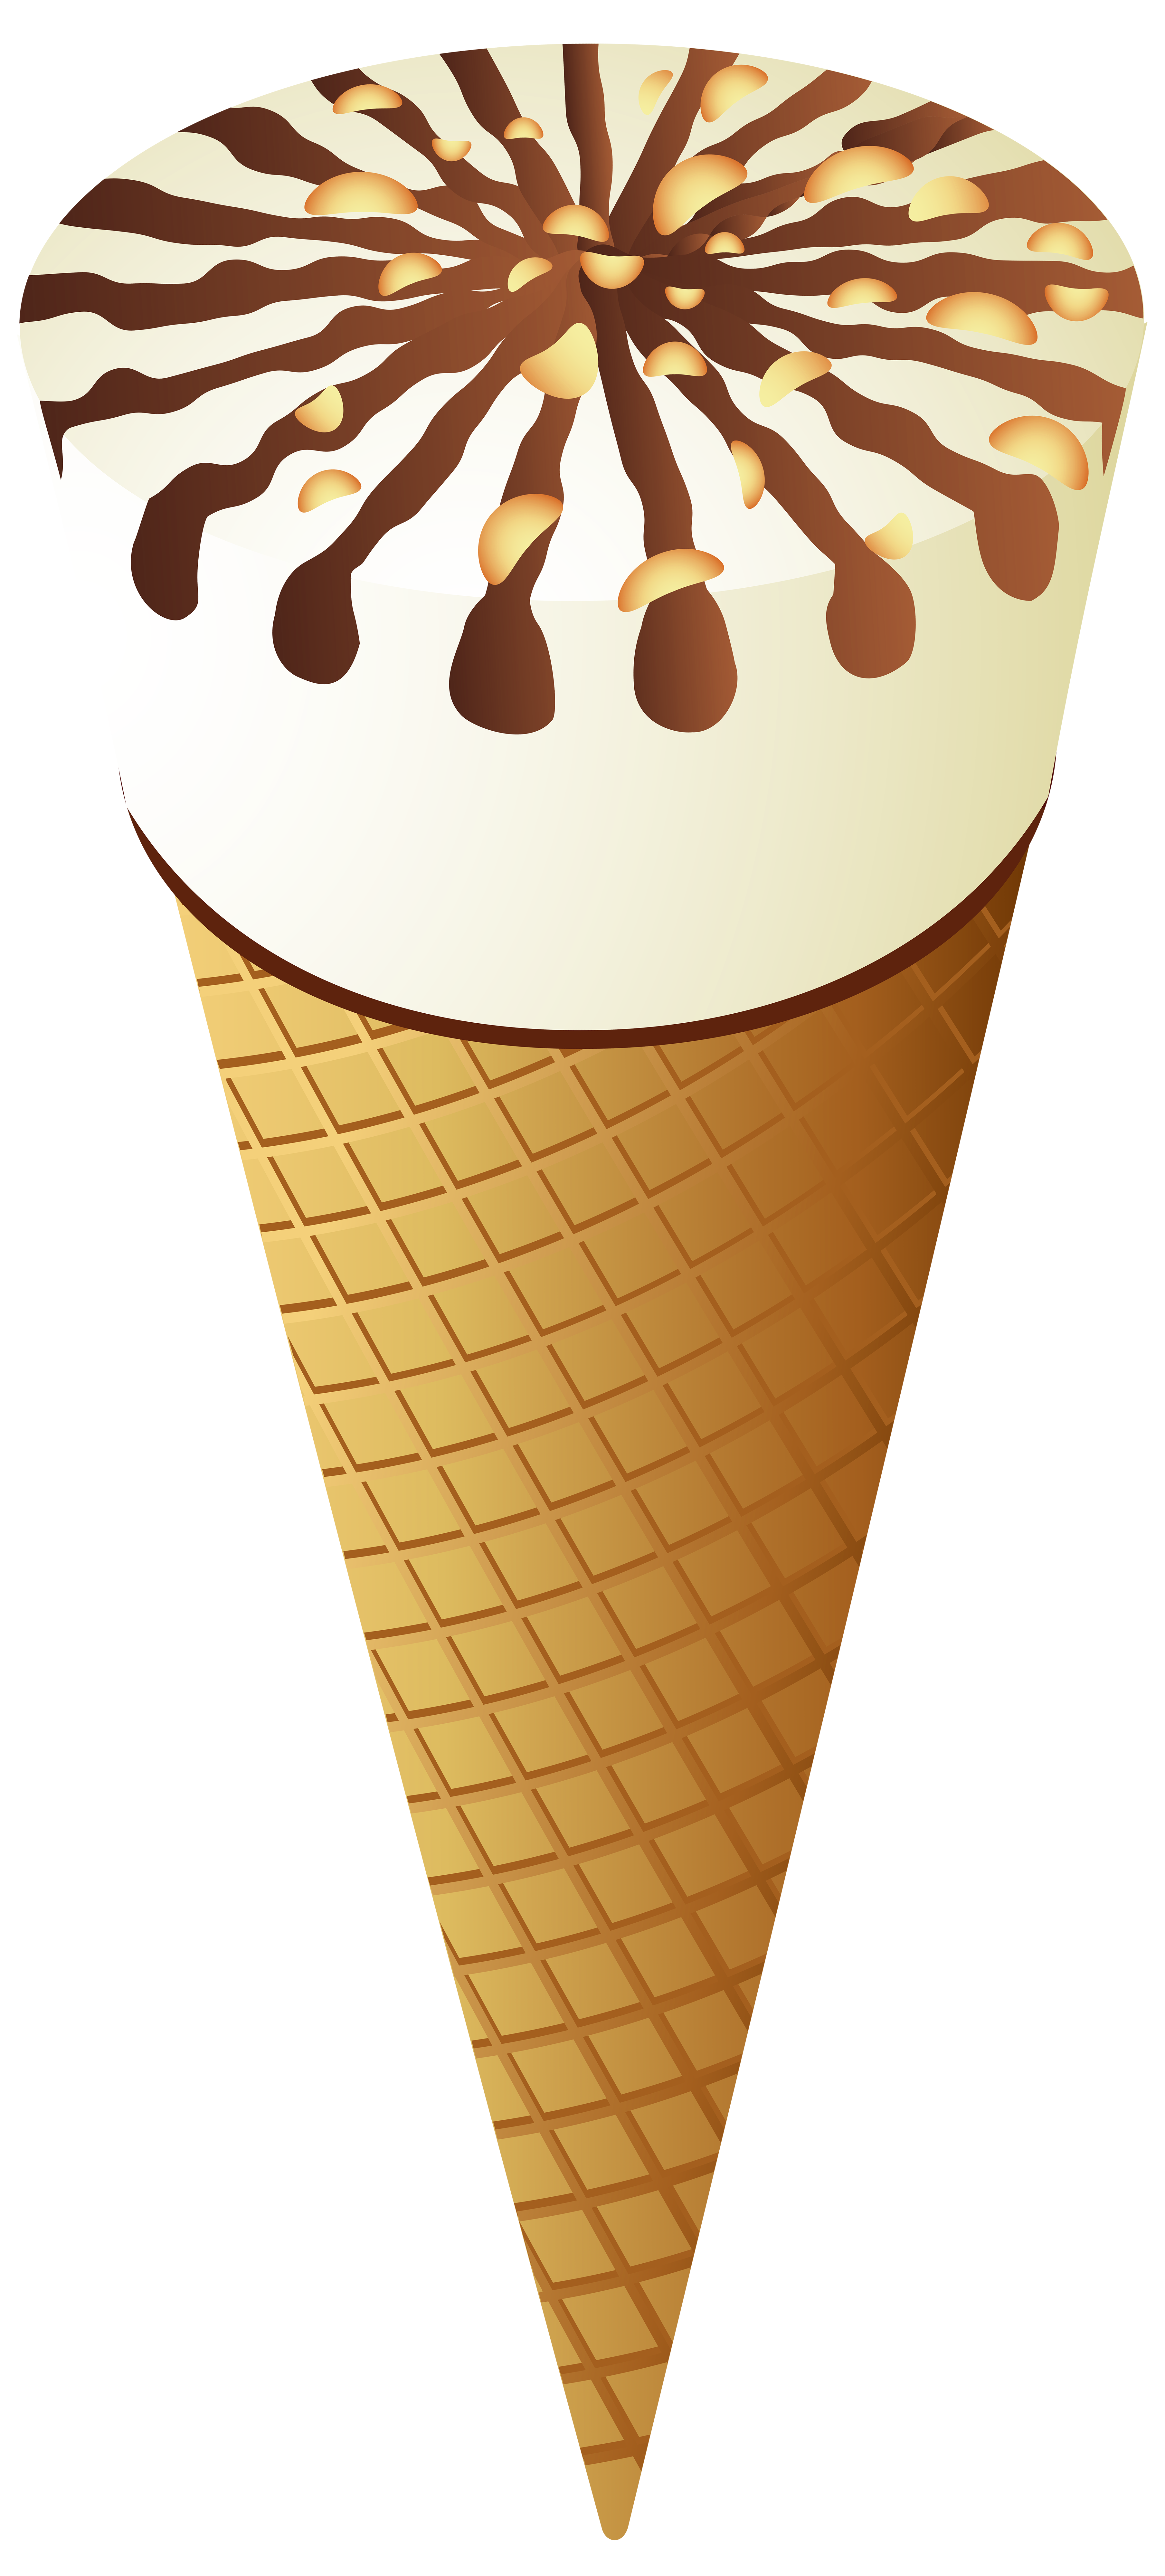 Ice cream cone clipart png graphic download Ice cream cone ice clip art image 9 - ClipartBarn graphic download